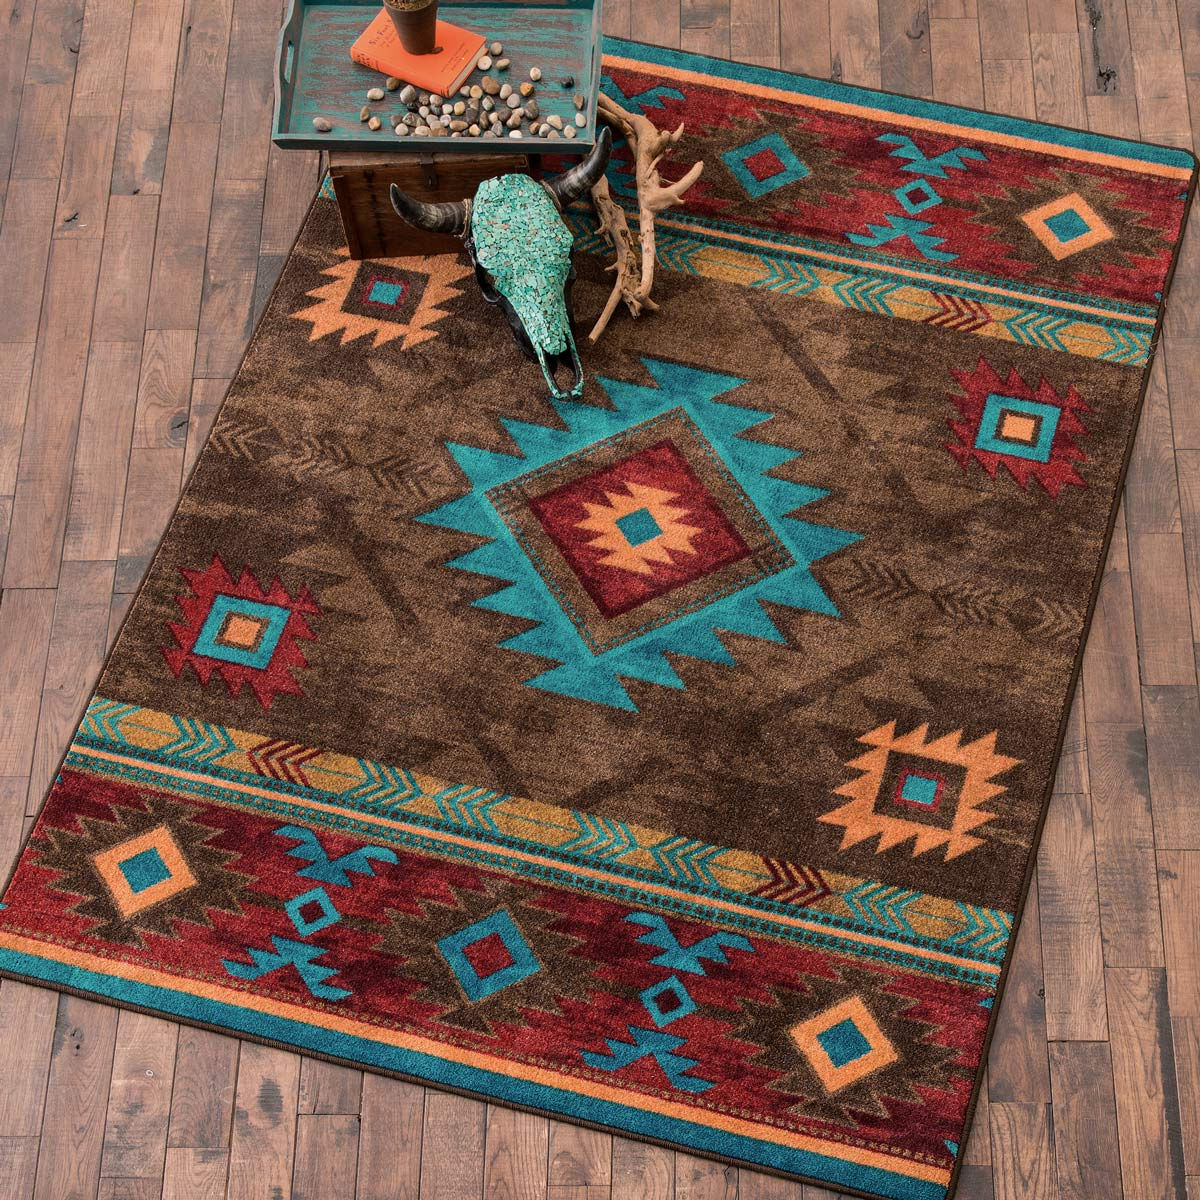 Luxury Southwestern Rugs for Classic Decor at Home southwestern area rugs